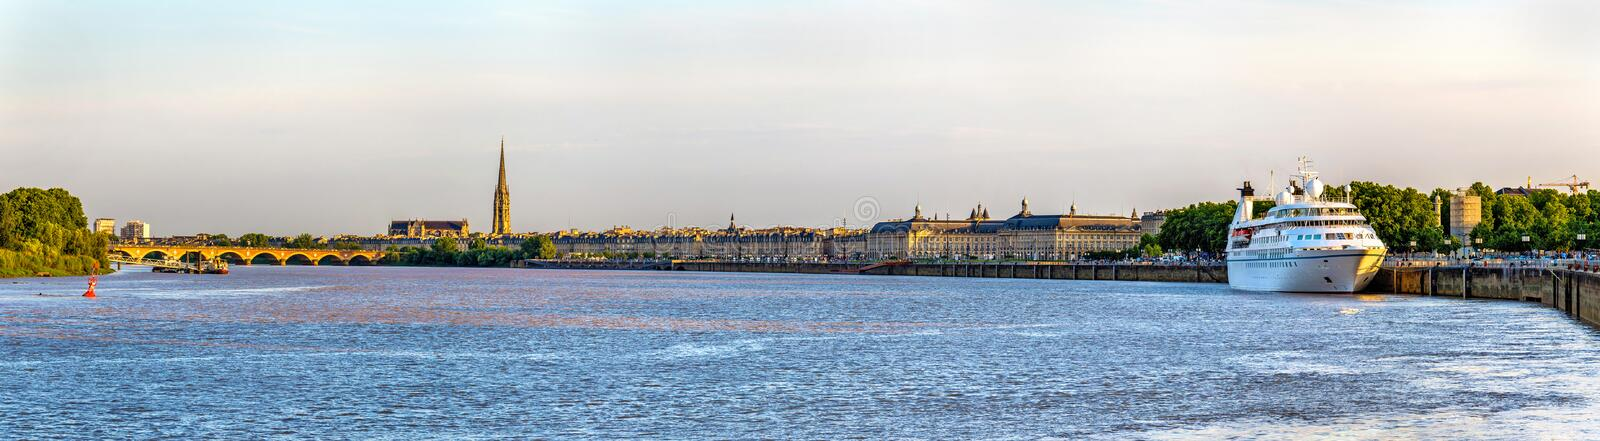 View of Bordeaux city with the river Garonne - France stock photography